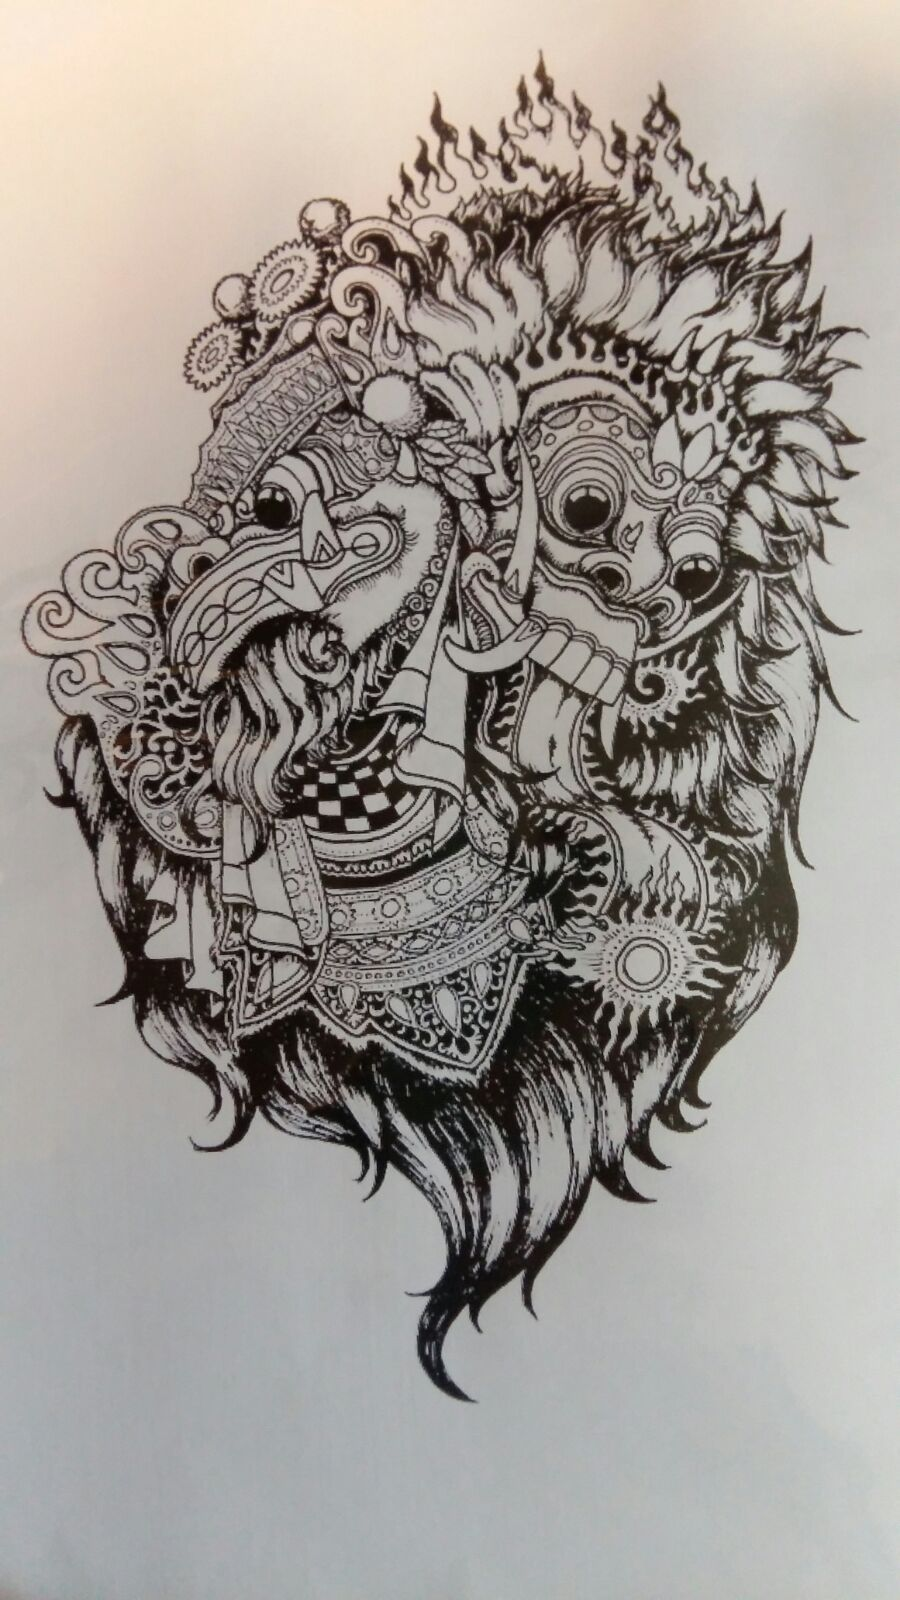 balinesse tattoo sketch barong rangda blackandgrey tattoo pinterest sketches tattoo and. Black Bedroom Furniture Sets. Home Design Ideas